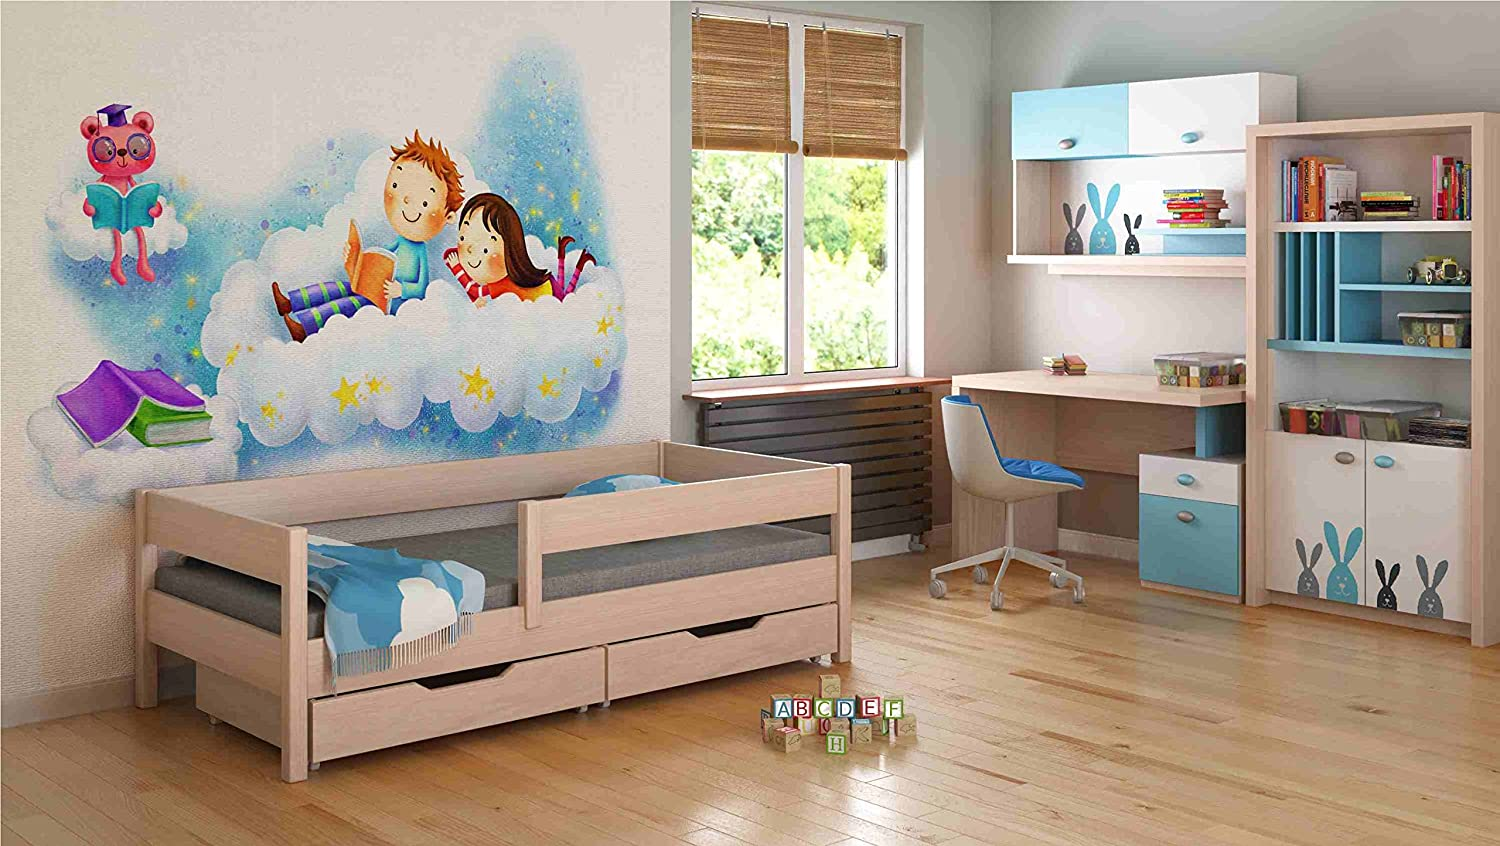 Childrens Beds Home Single Beds For Kids Children Toddler Junior With Drawers No Mattress Included 160x80 White Toddler Beds